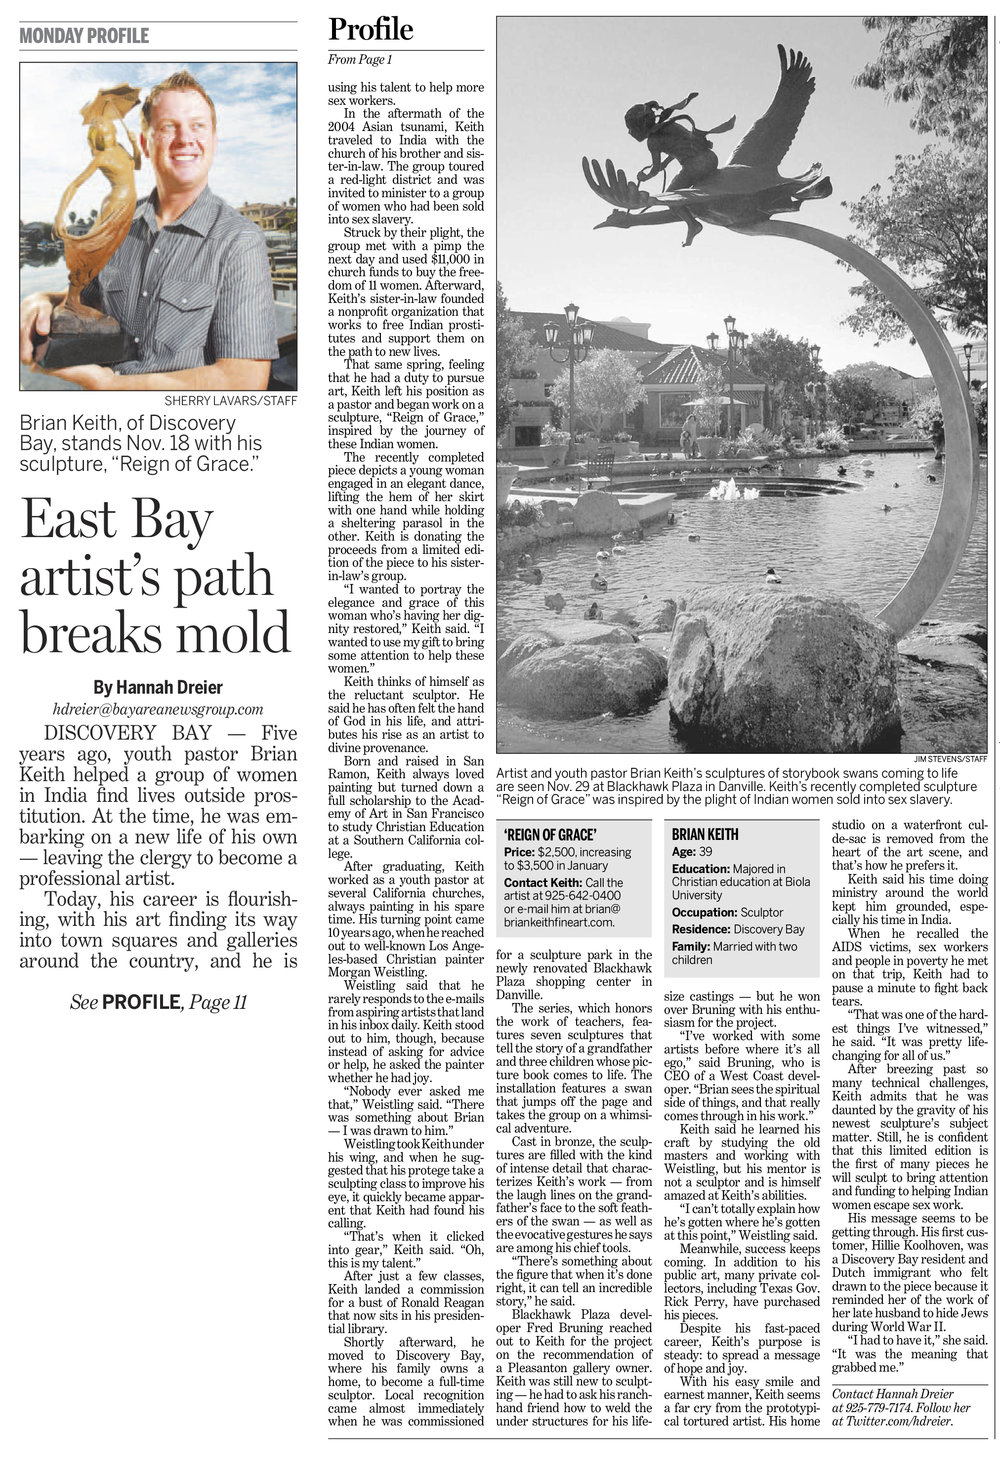 Contra Costa Times Feature Article